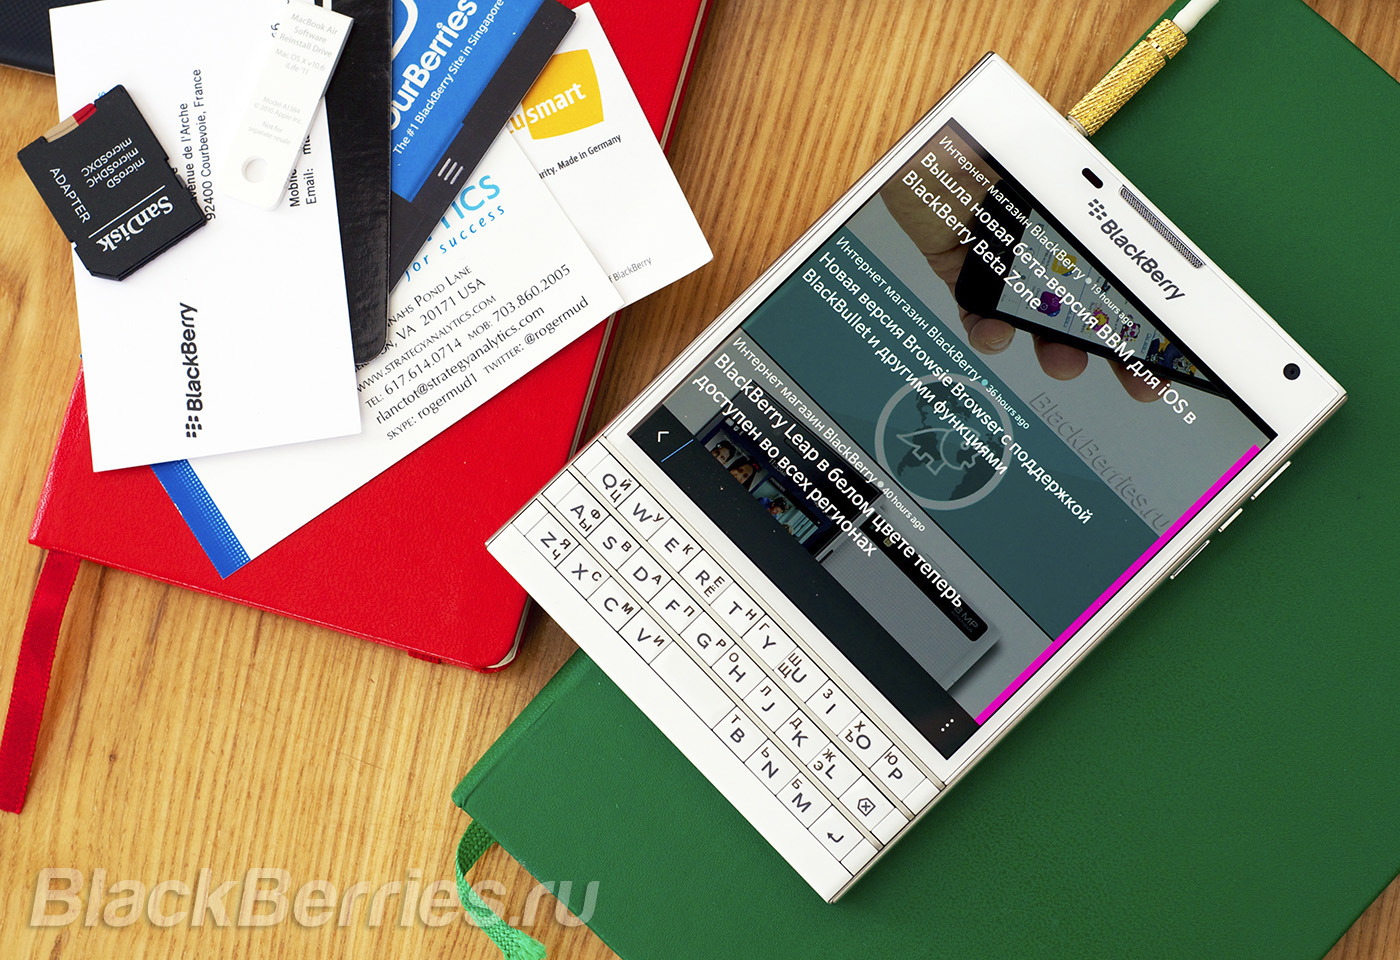 BlackBerry-Passport-31-05-02